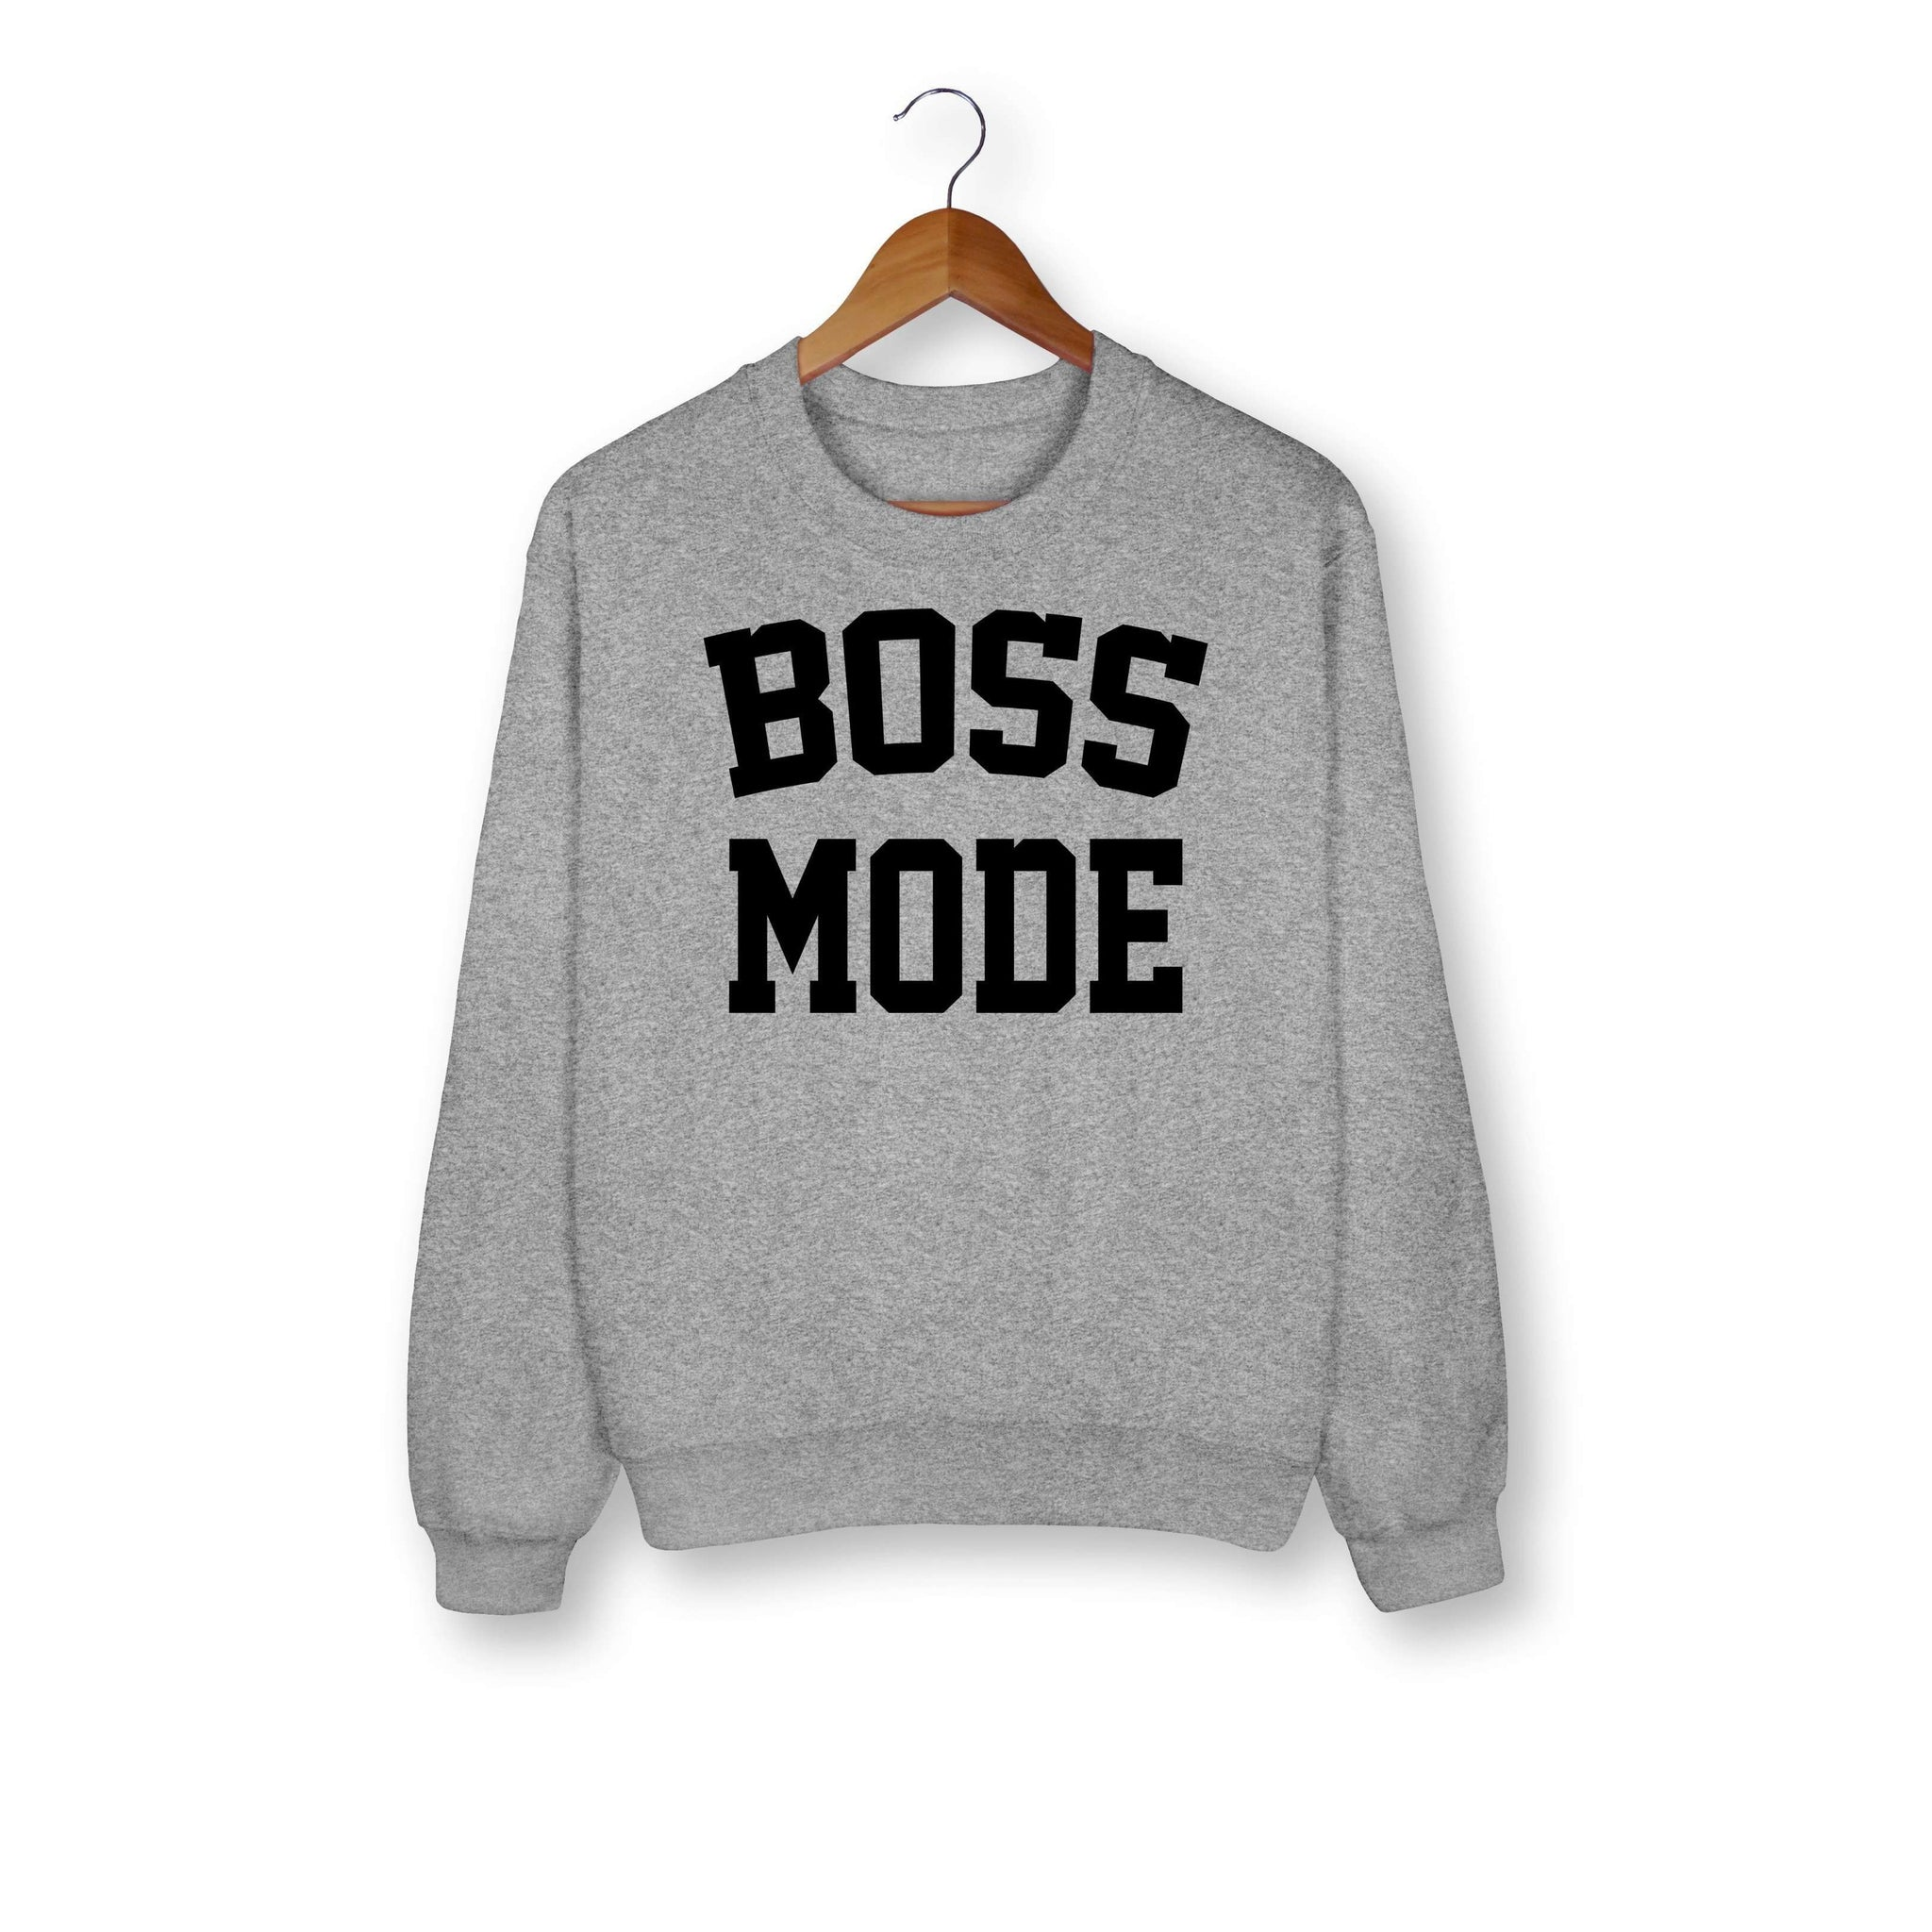 Boss Mode Sweatshirt